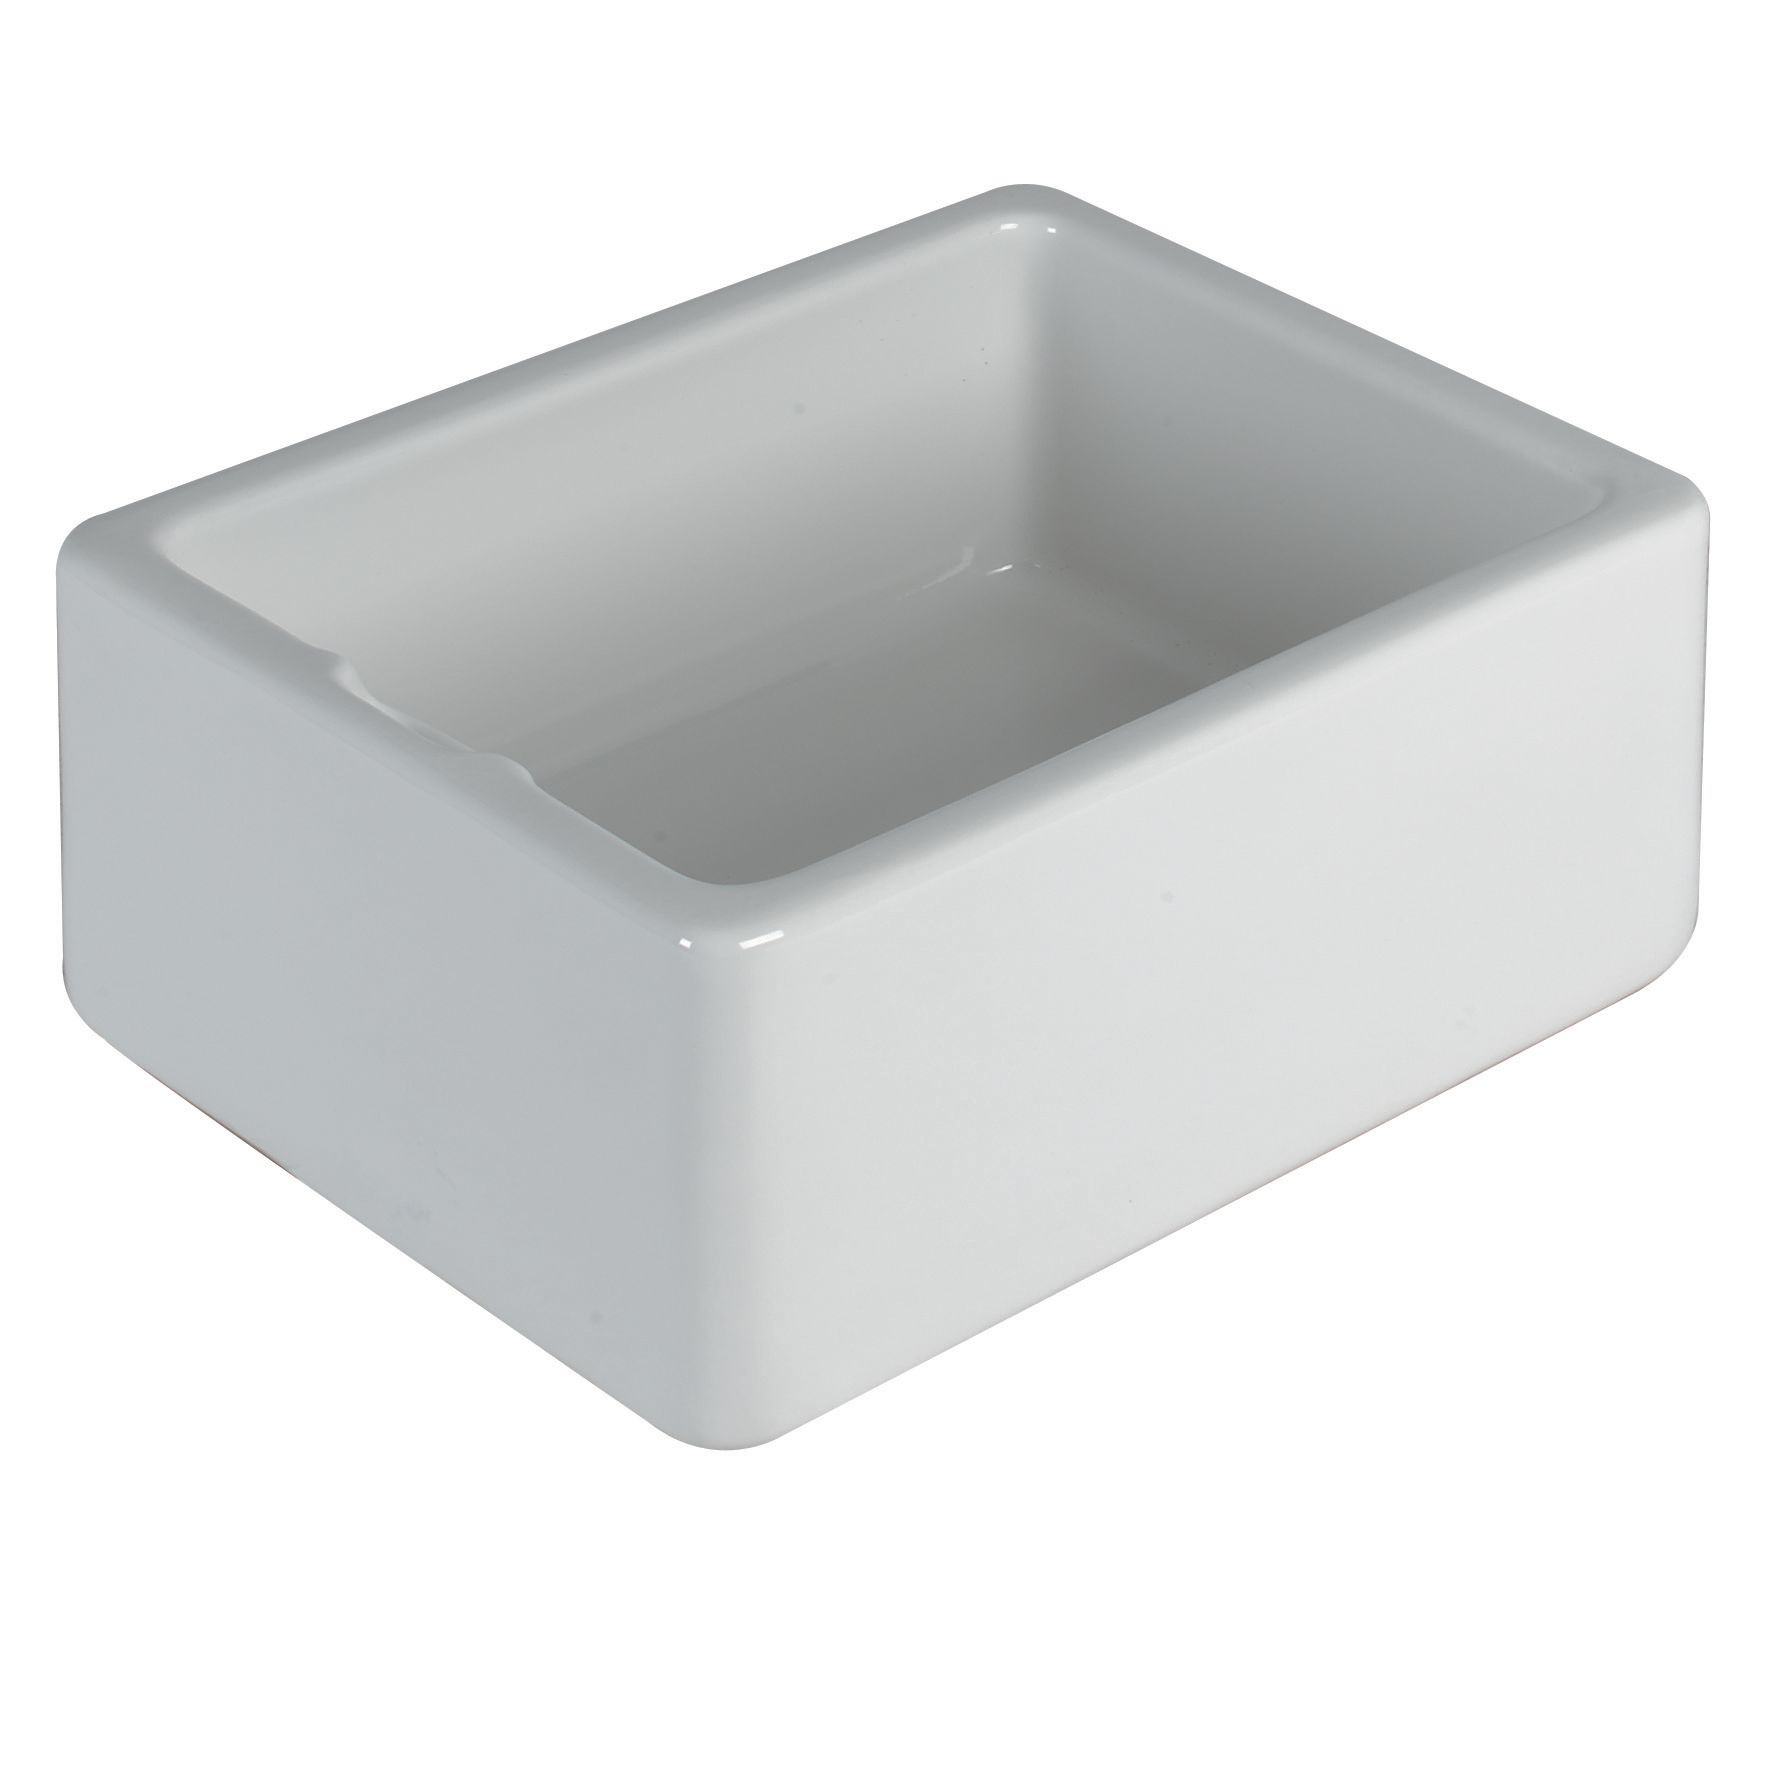 Belfast 1 Bowl White Gloss Ceramic Sink | Departments ...